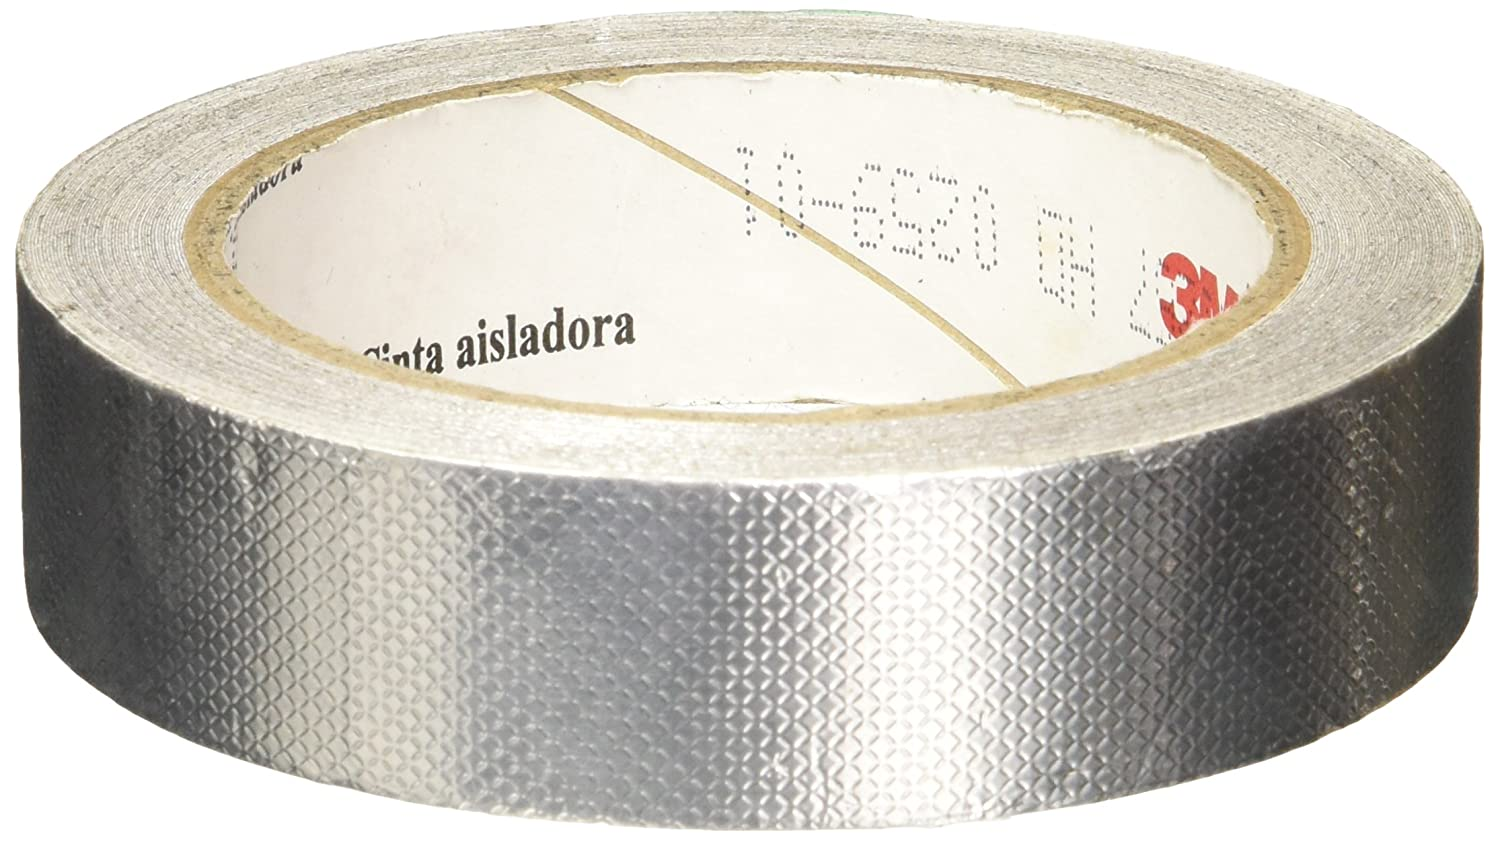 "3M 1345 0.5"" x 18yd Silver Tin/ Copper/Acrylic Adhesive Embossed Foil Tape 0.004"" Thick, 18 yd length, 0.5"" width, 1 roll"